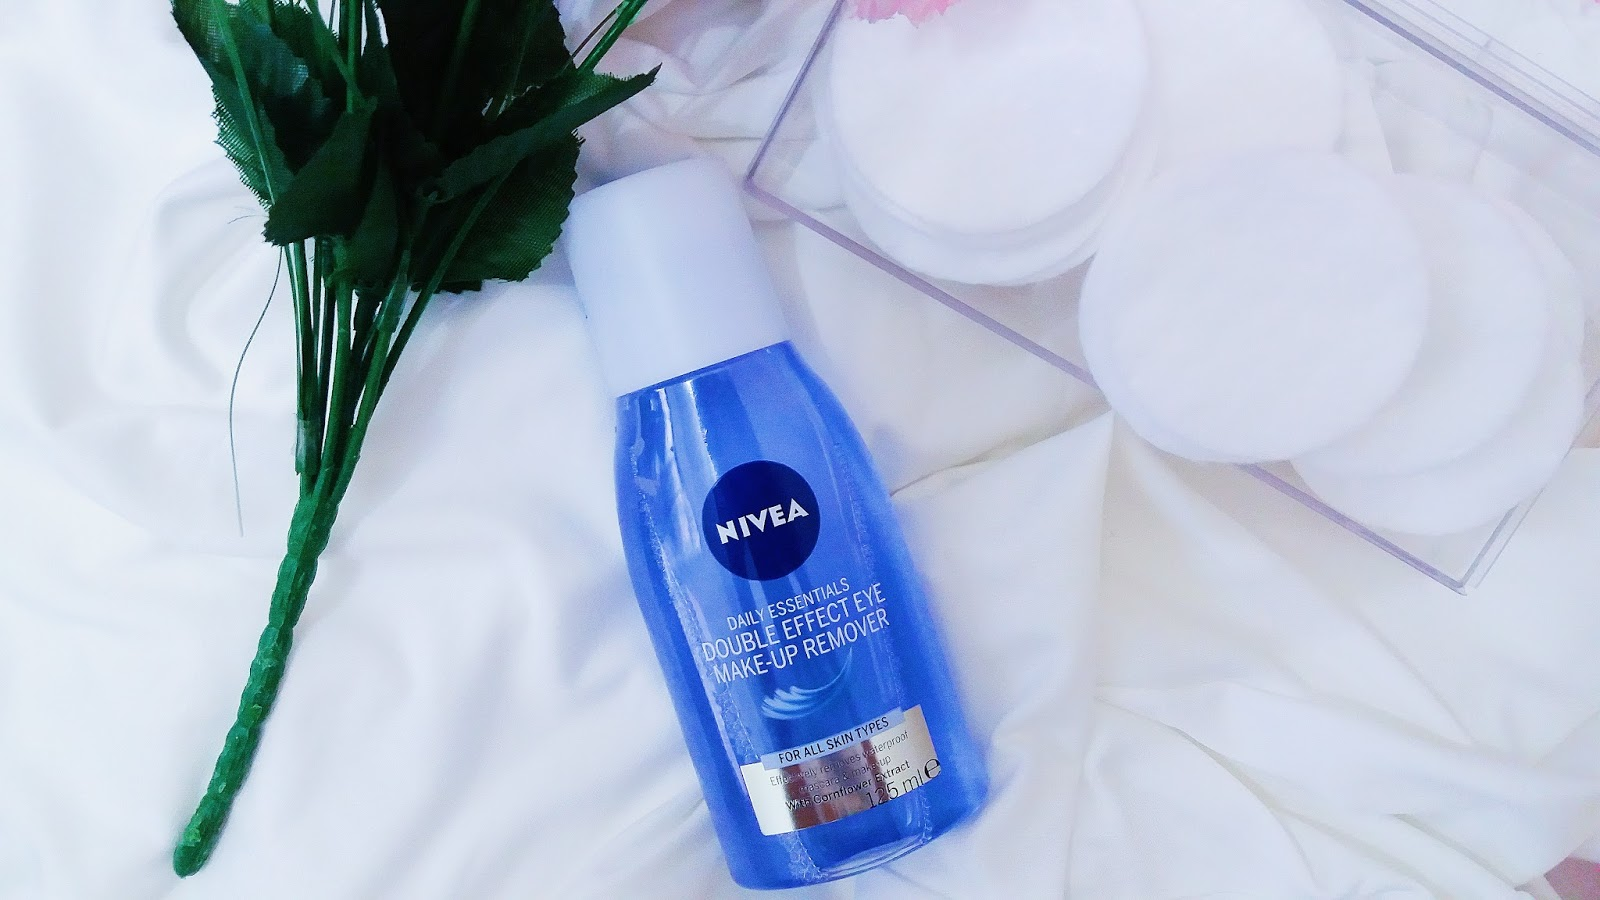 NIVEA DOUBLE EFFECT EYE MAKE-UP REMOVER REVIEW